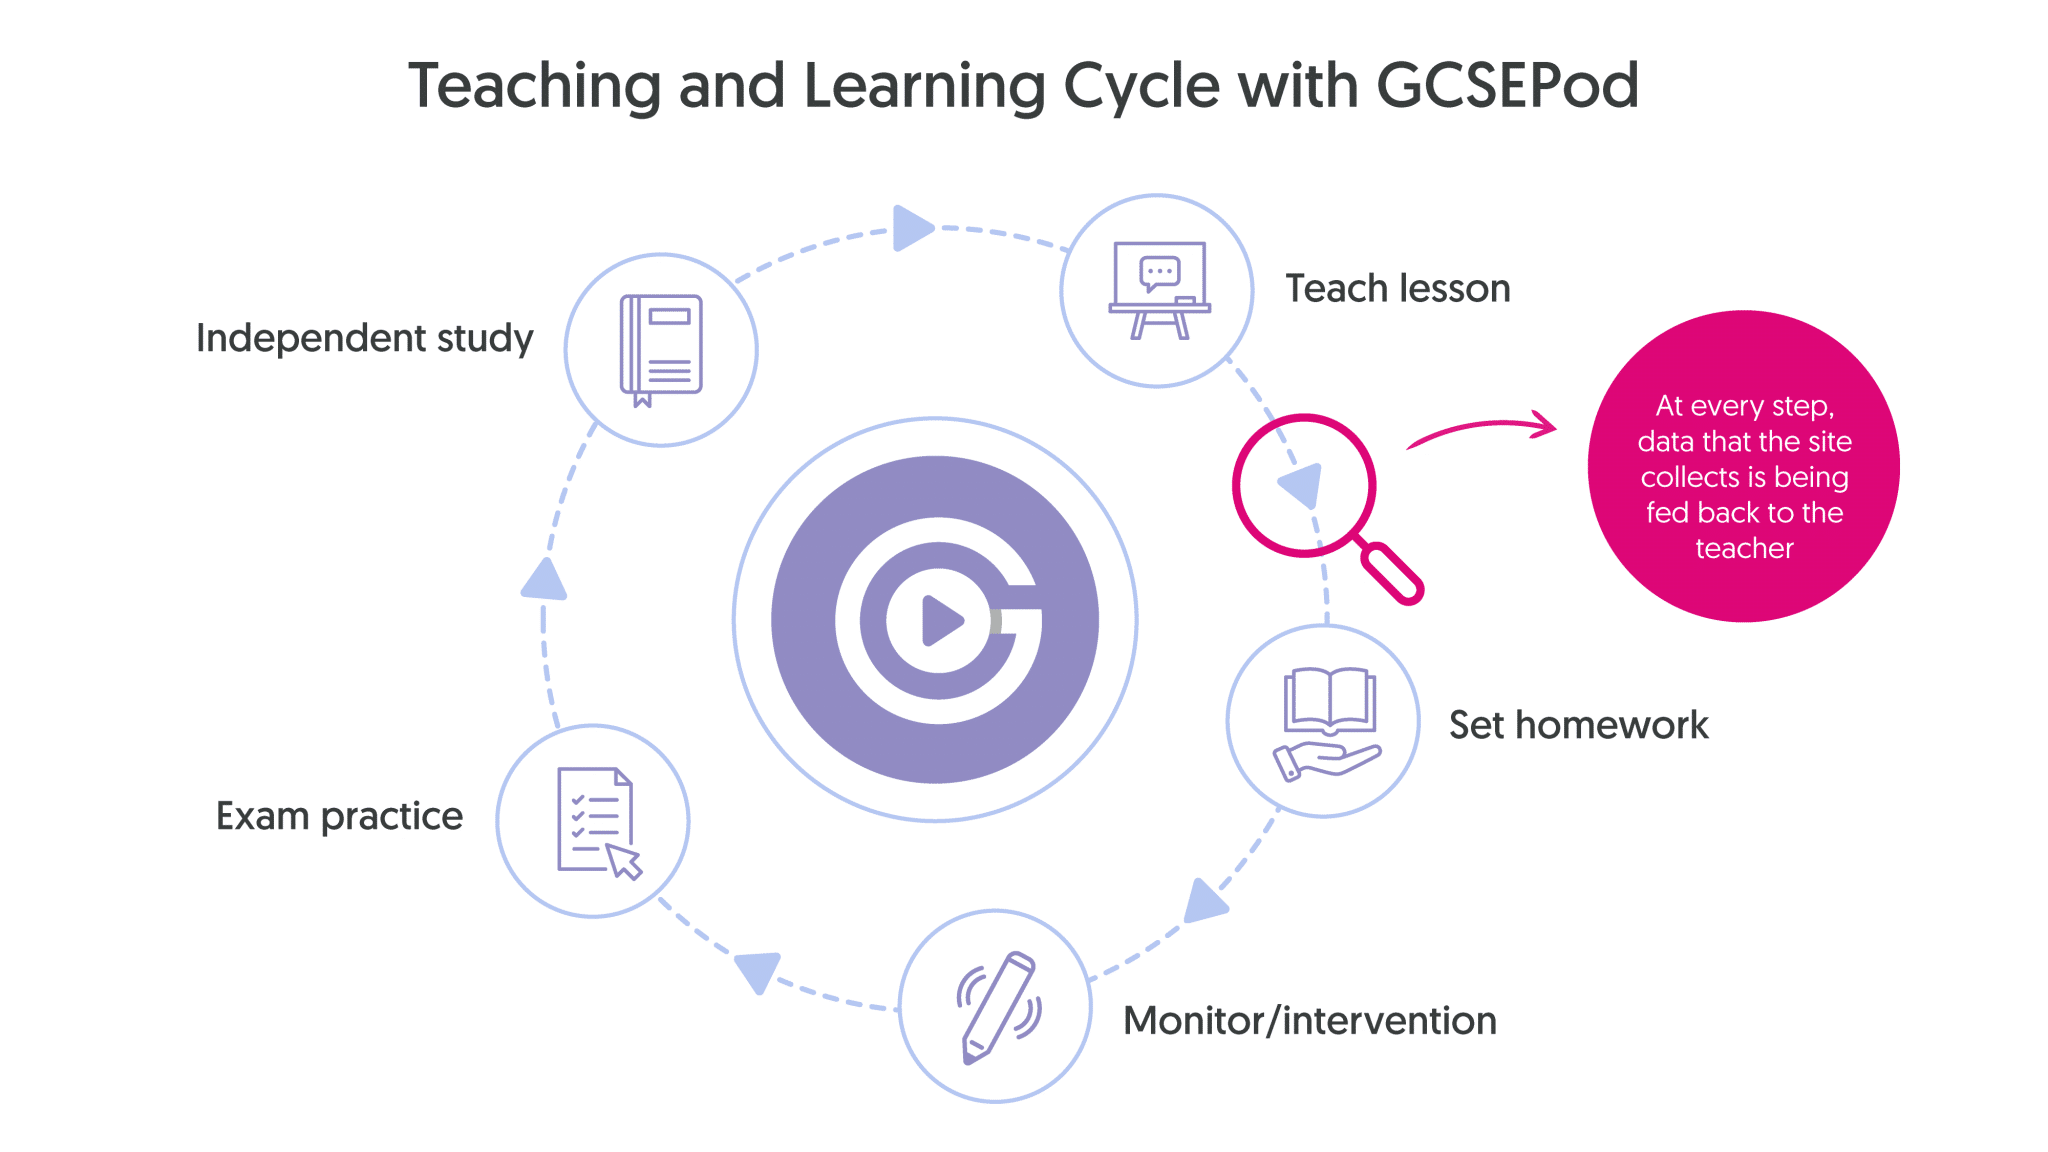 Teaching cycle of GCSEPod